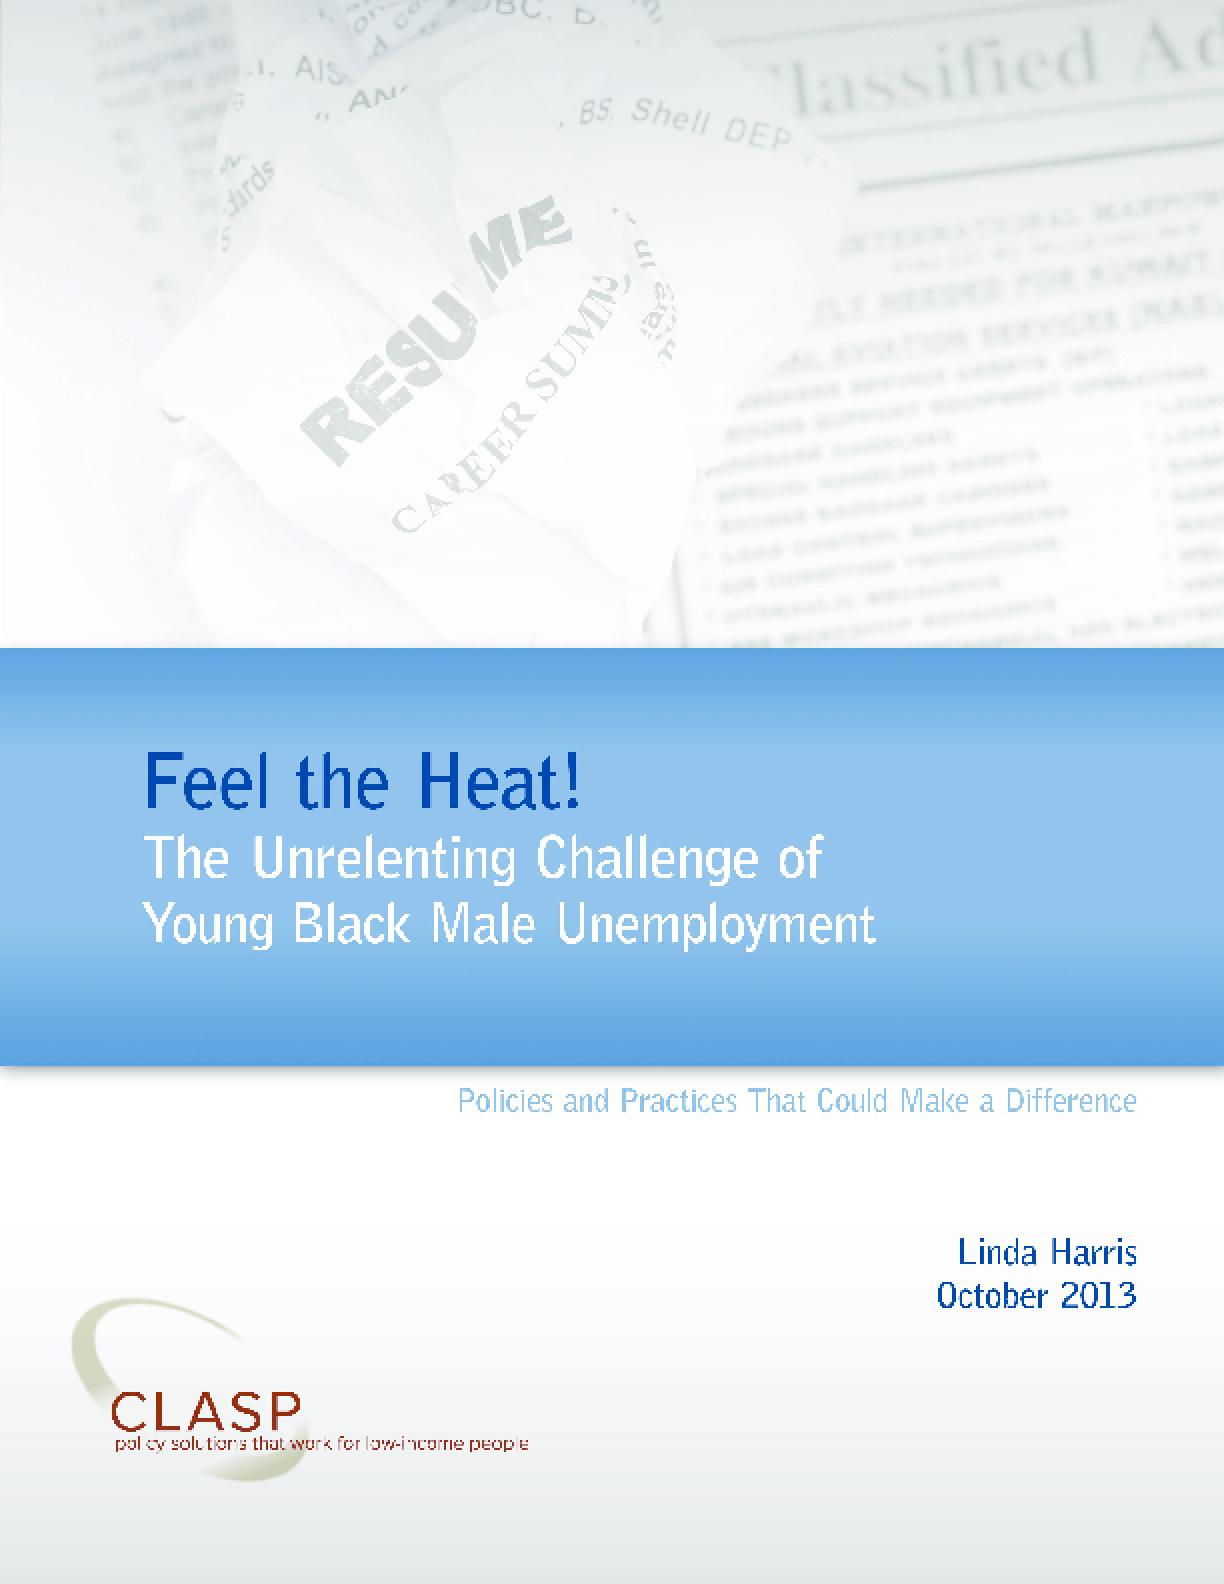 Feel the Heat! The Unrelenting Challenge of Young Black Male Unemployment